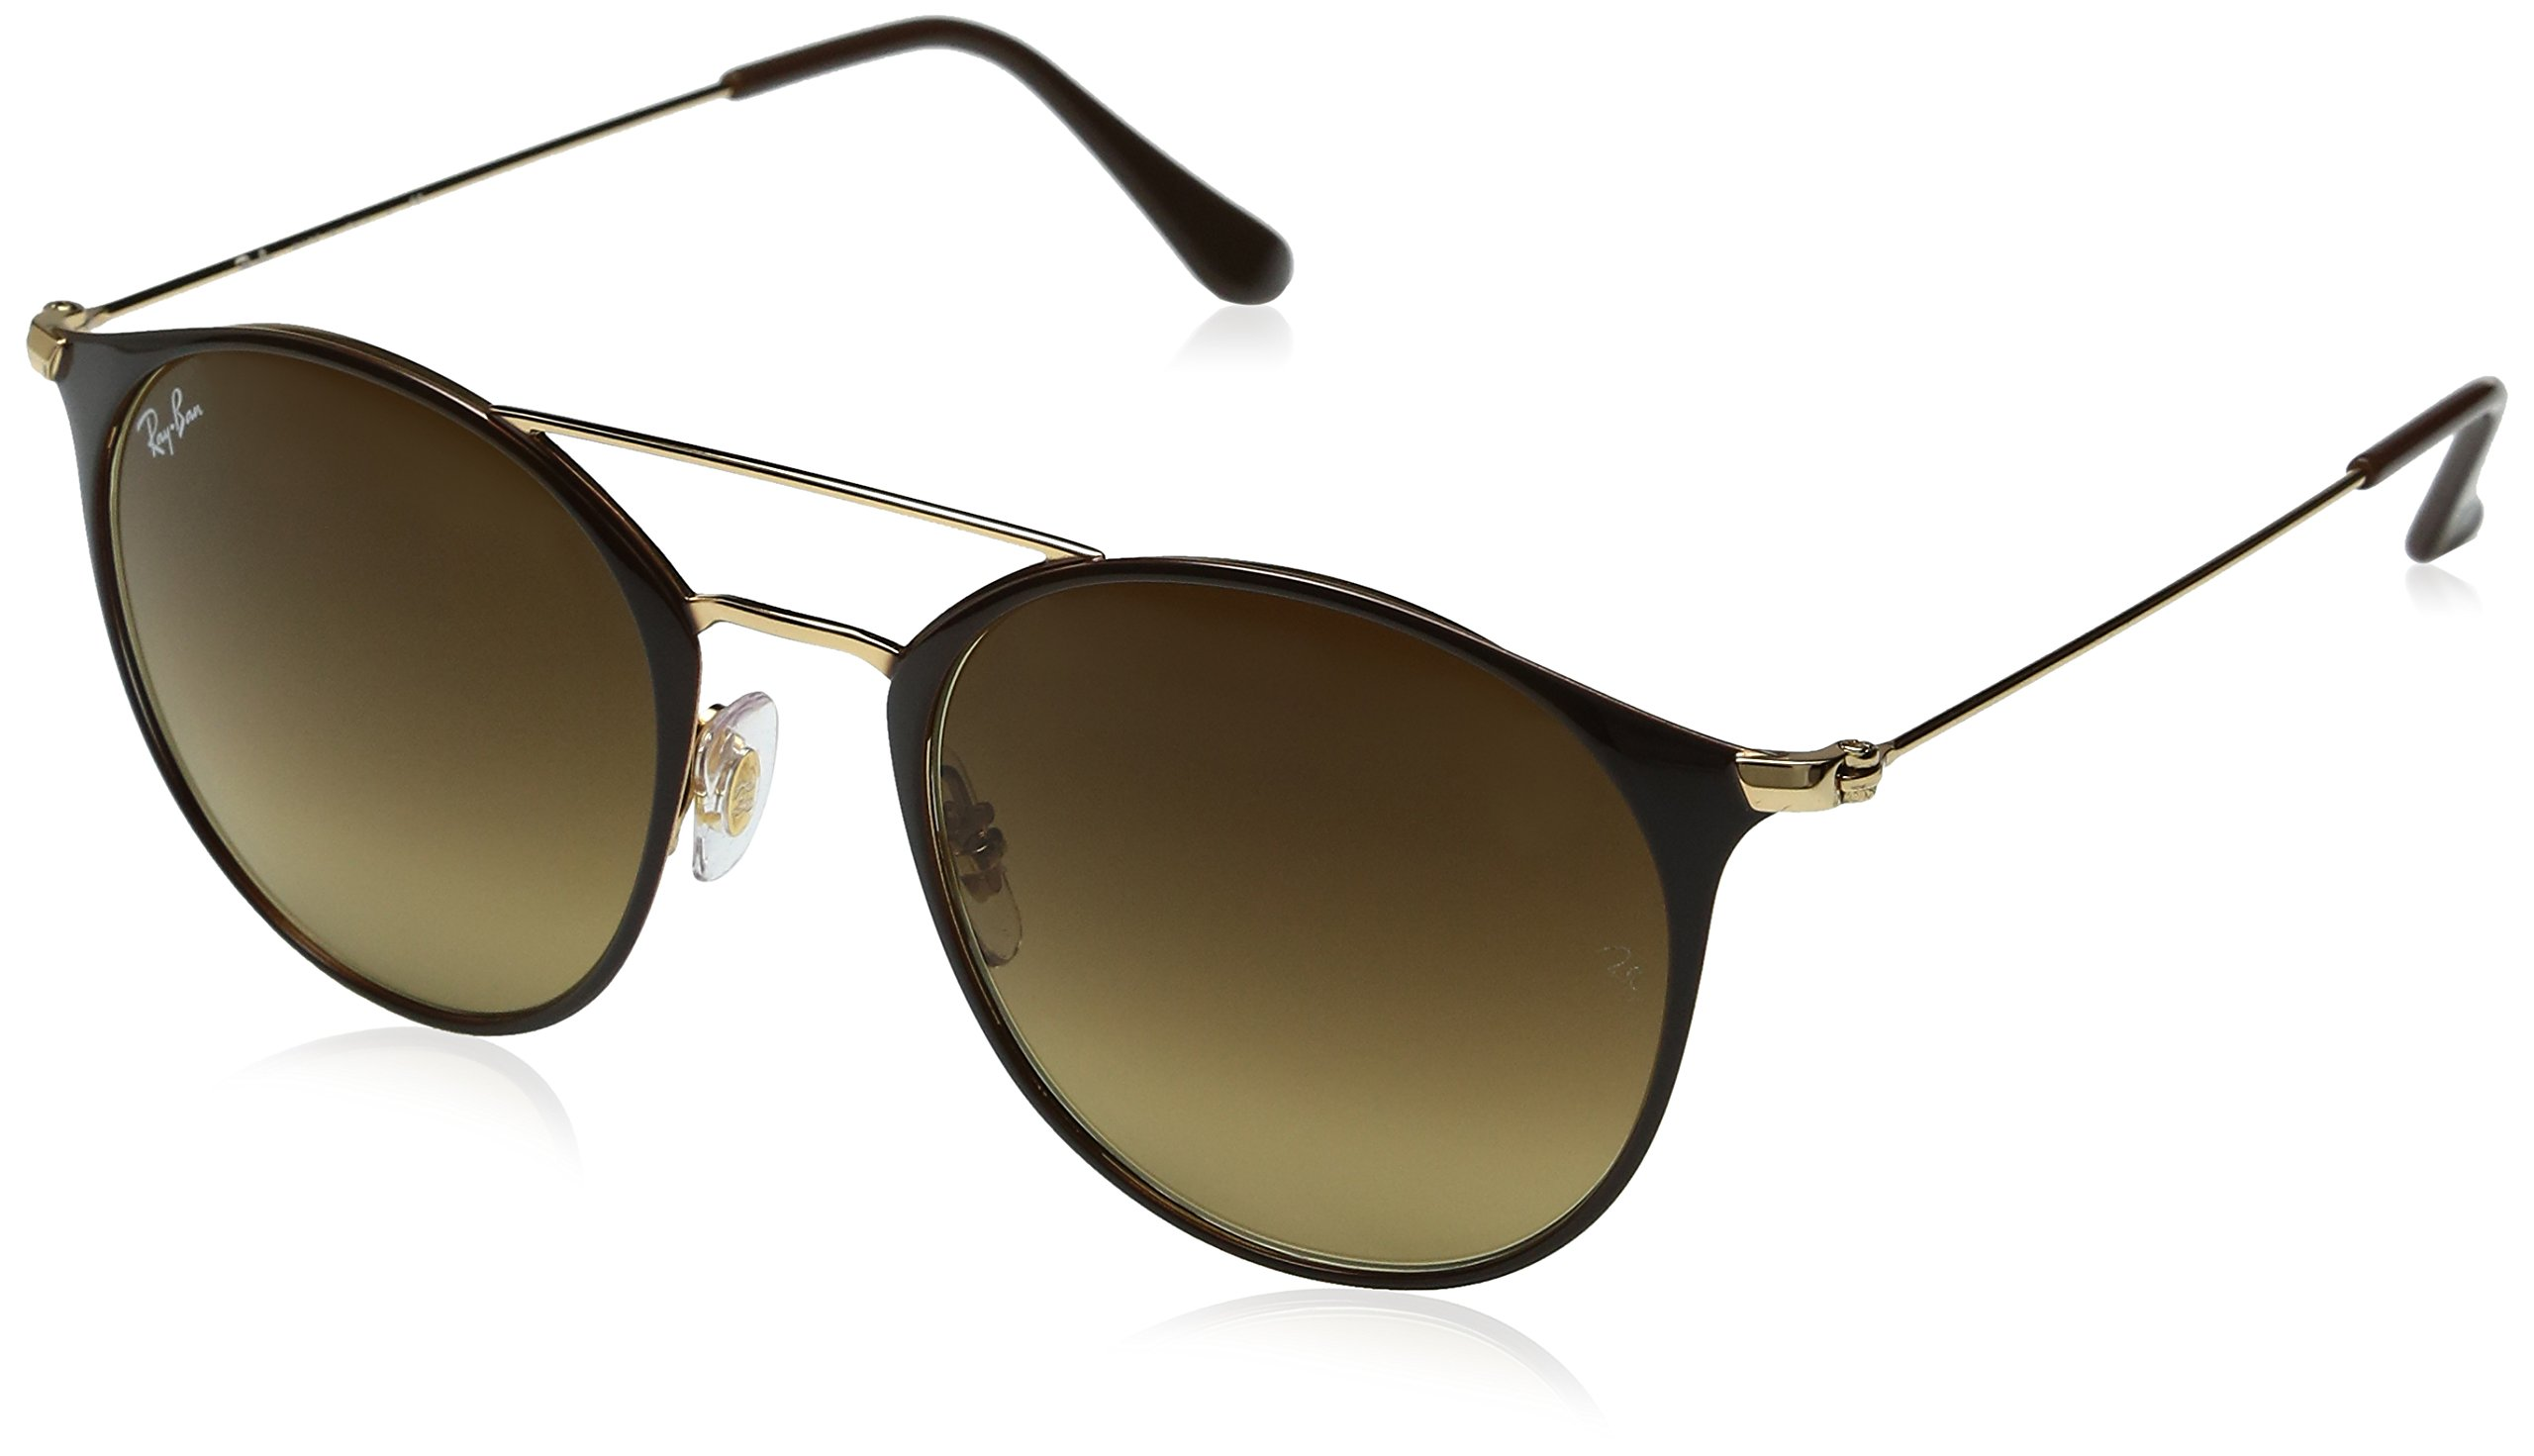 Ray-Ban Steel Unisex Round Sunglasses, Gold Top Brown, 52 mm